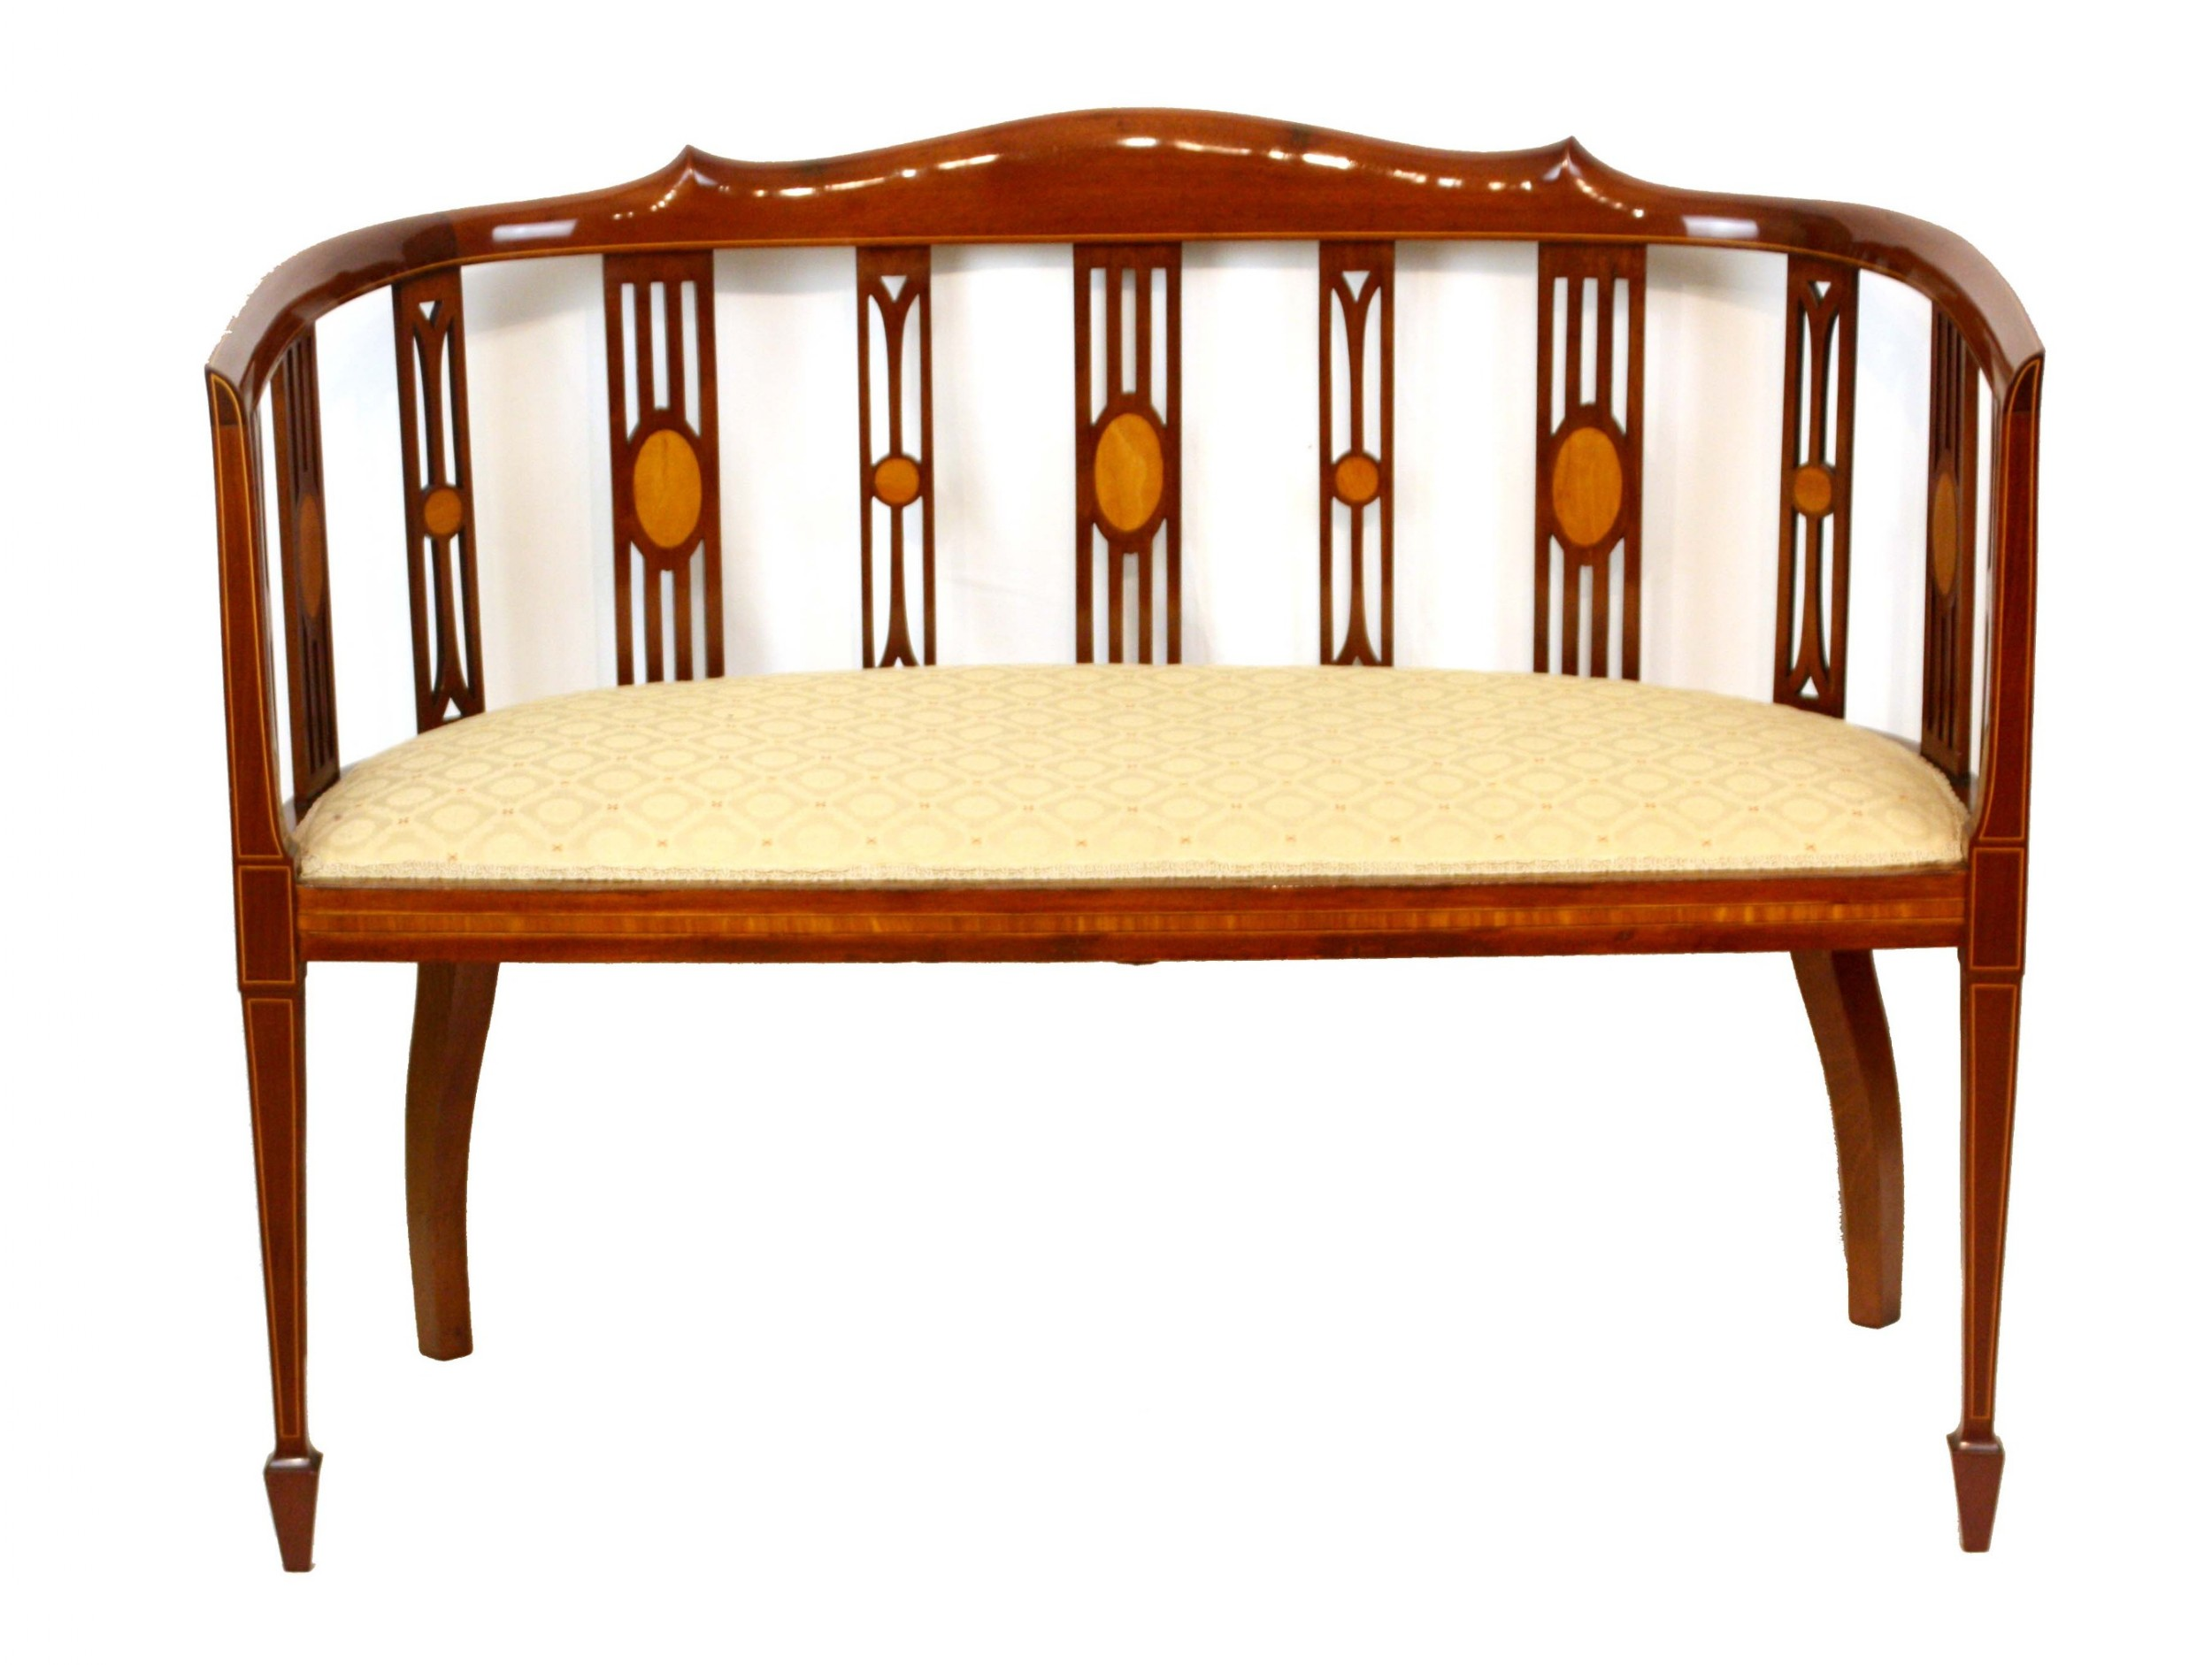 a fine late victorian mahogany inlaid upholstered settee